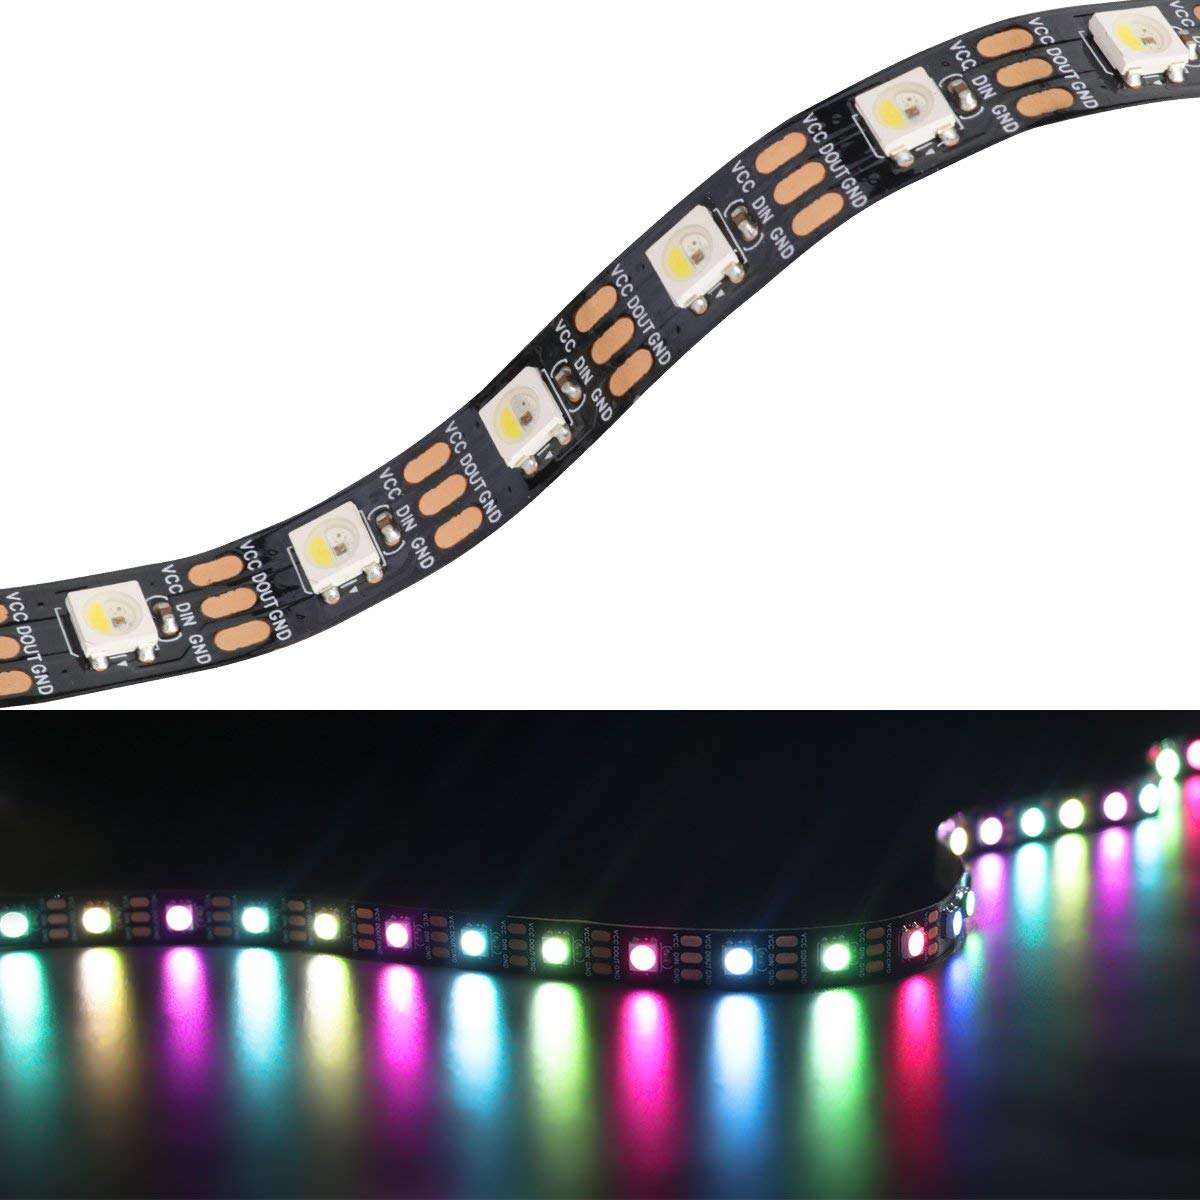 Mokungit SK6812 (Similar WS2812B) RGB+Cool White(6500K) 4 color in 1 Chip Dream Color LED Strip 16.4ft/5m 60leds/m Black PCB Individually Addressable Flexible Non-waterproof IP20 DC5V